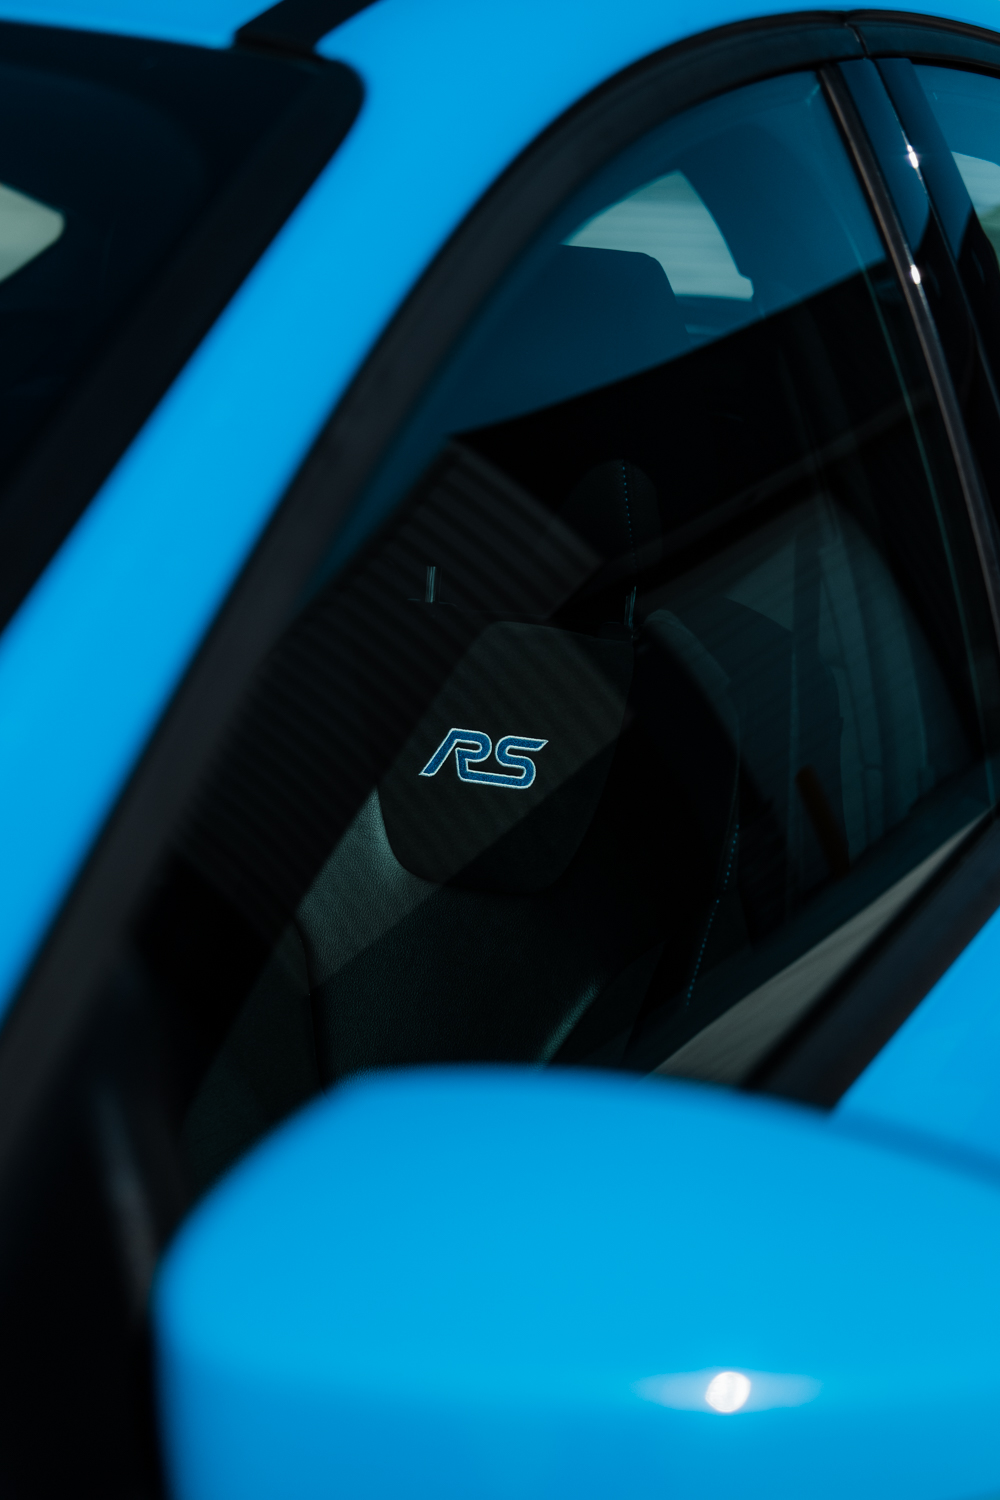 Ford Focus RS-XPEL Ultimate Paint Protection Film-Car Wash-Car Detailing-Paint Protection Film-Clear Bra-Ford Performance-200.jpg